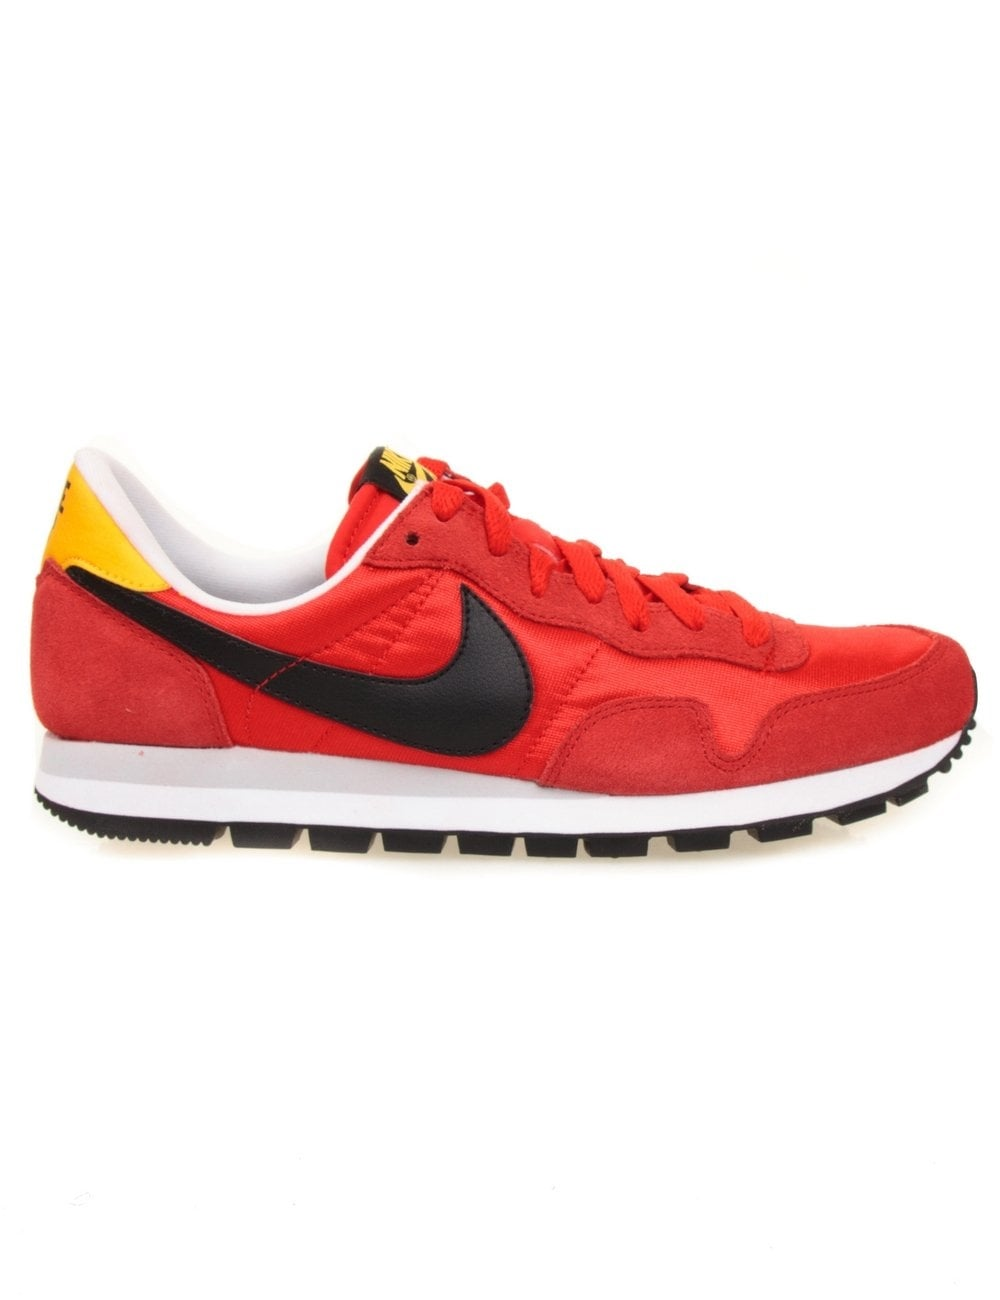 cheap price best loved pre order Nike Air Pegasus 83 - Chilling Red - Footwear from Fat Buddha Store UK